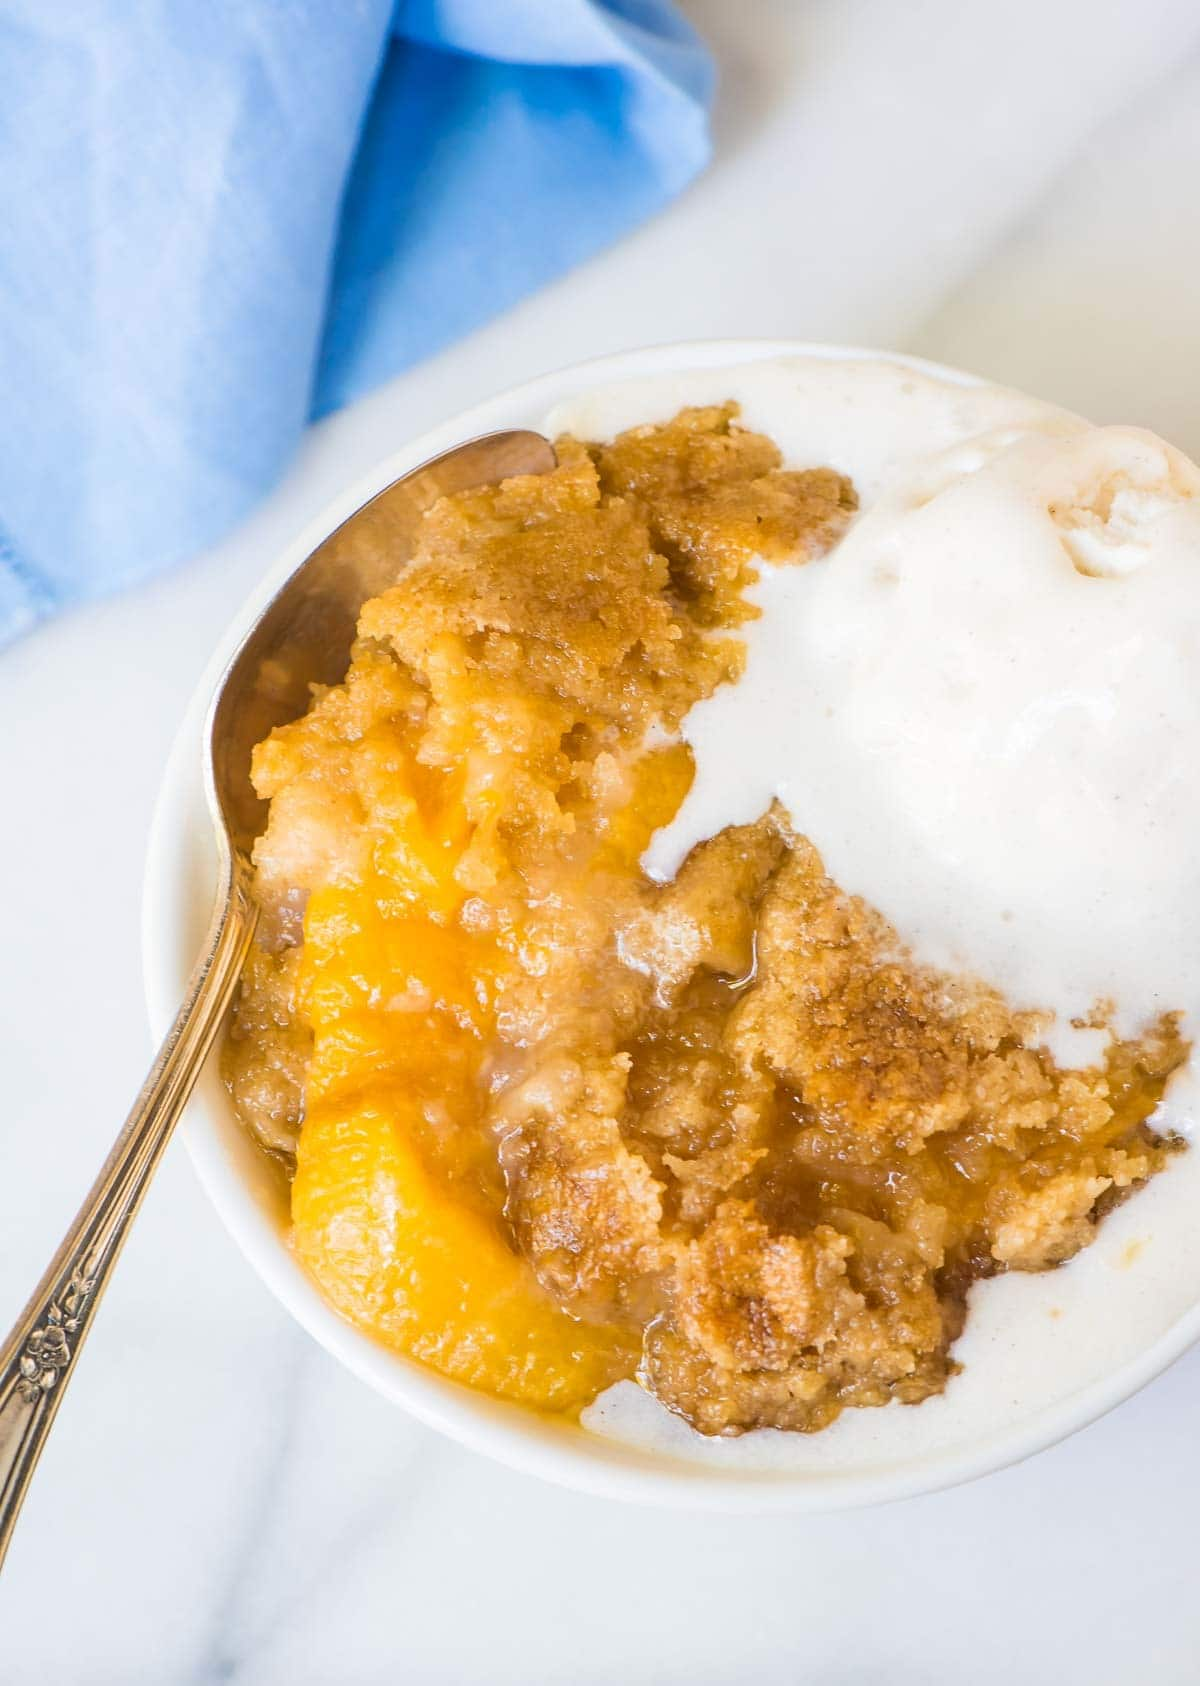 Crock Pot Peach Cobbler. This easy dessert is made entirely in your slow cooker! Juicy peaches, a sweet, buttery topping, and it couldn't be simpler. Just dump the ingredients into your crockpot and walk away! @wellplated